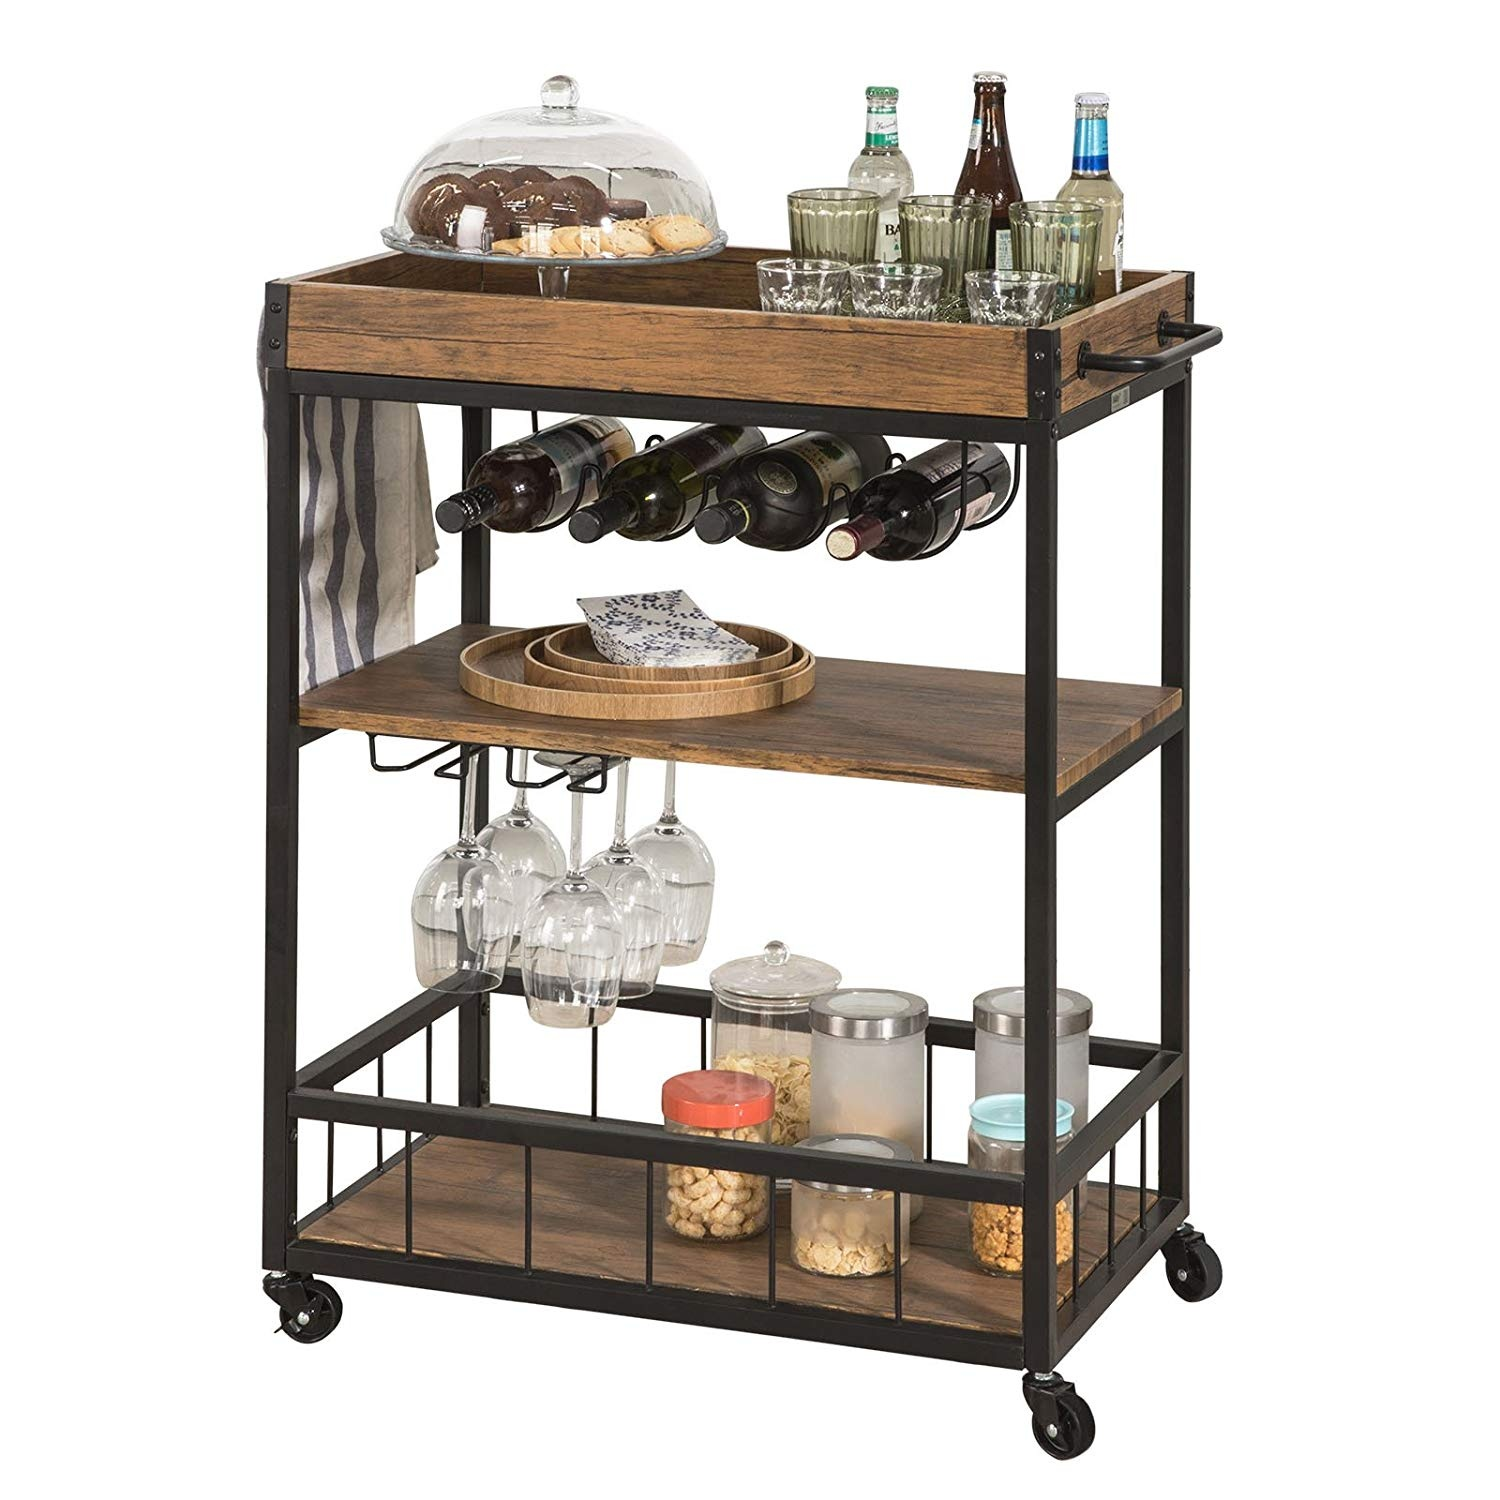 Sobuy Shop Sobuy Fkw56 N Industrial Vintage Style Wood Metal 3 Tiers Kitchen Serving Trolley With Wine Rack